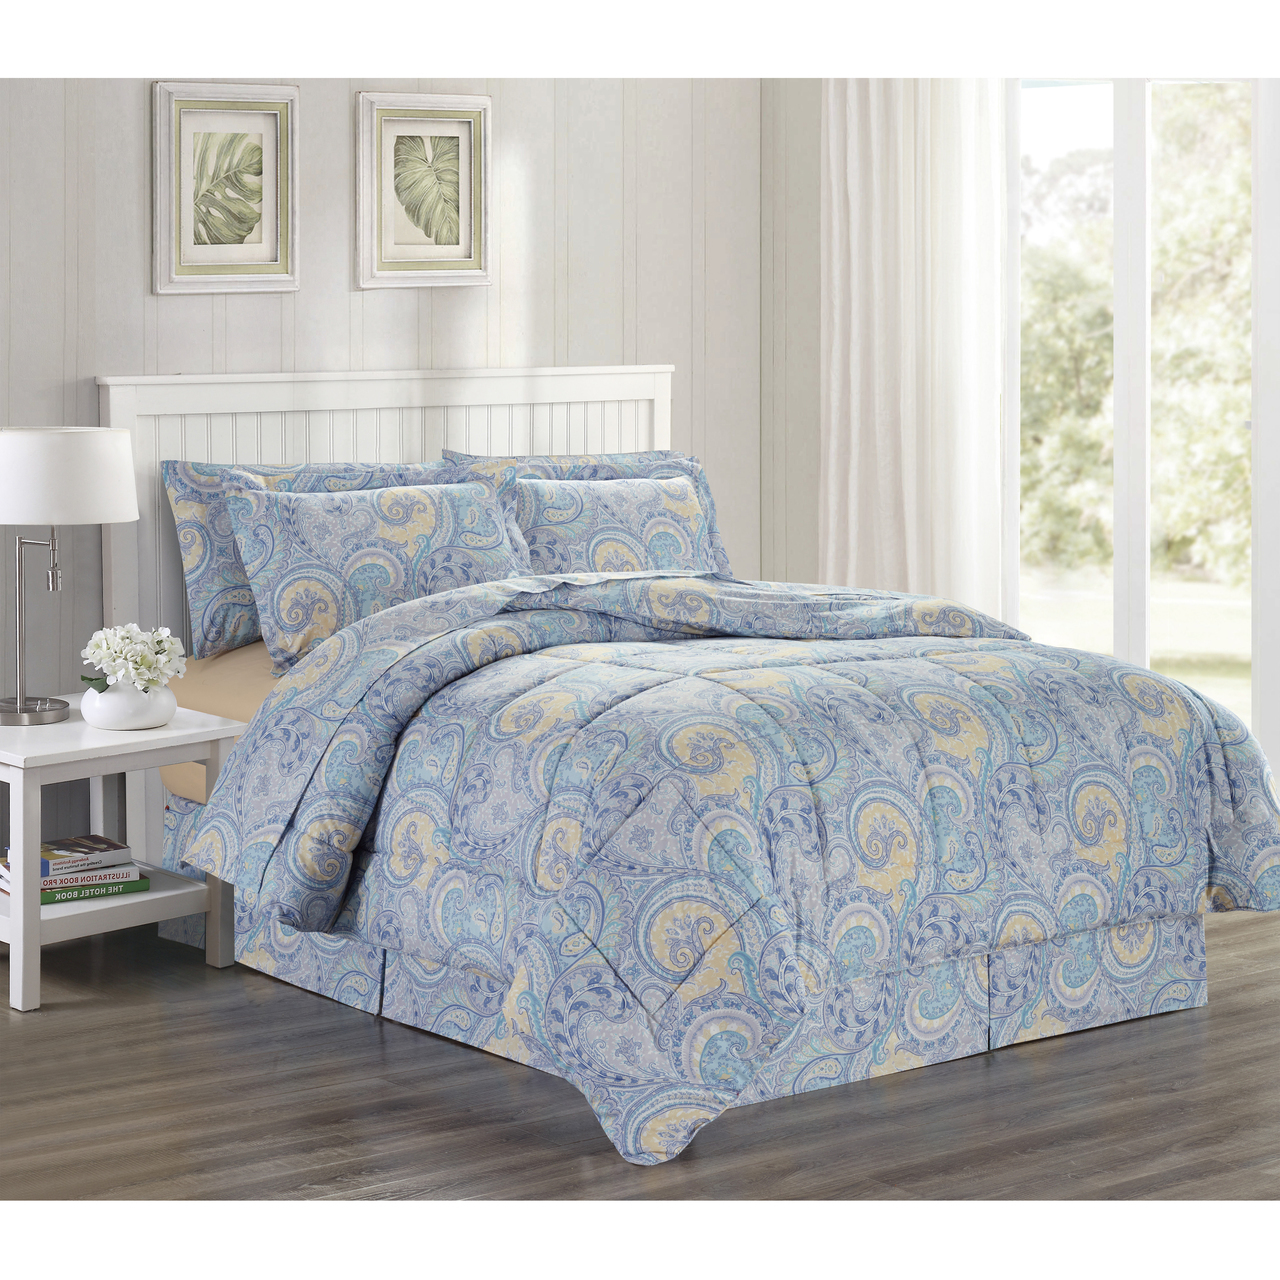 Ultra Soft Microfiber 8 PC Paisley Scroll Printed Down Alternative Bed in a Bag, Bedding Set (Isla, Queen)